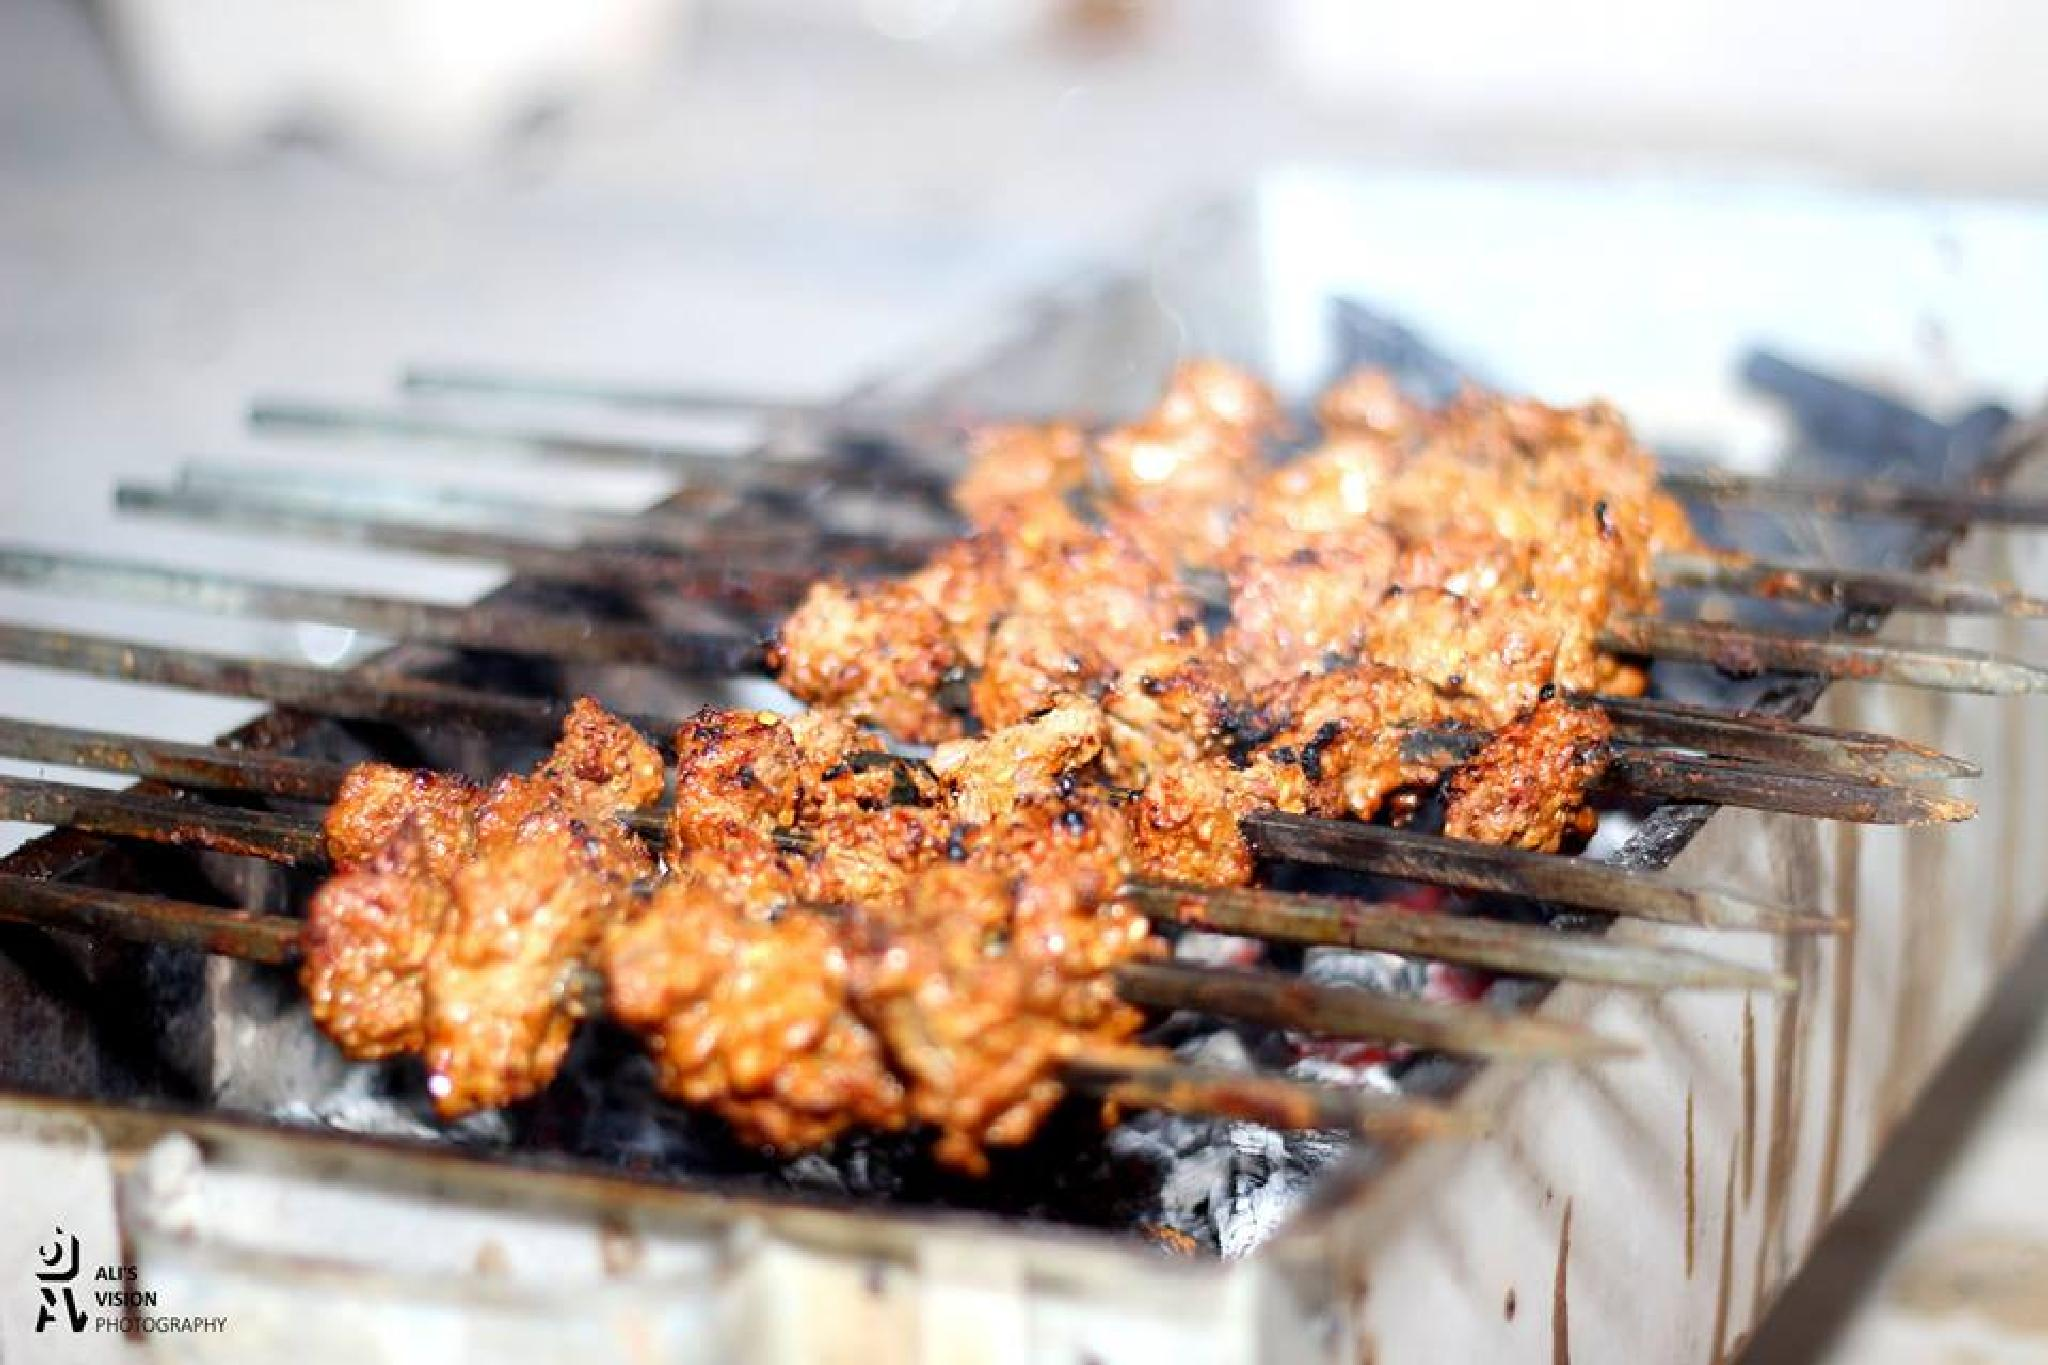 Barbeque by Syed Muhammad Ali